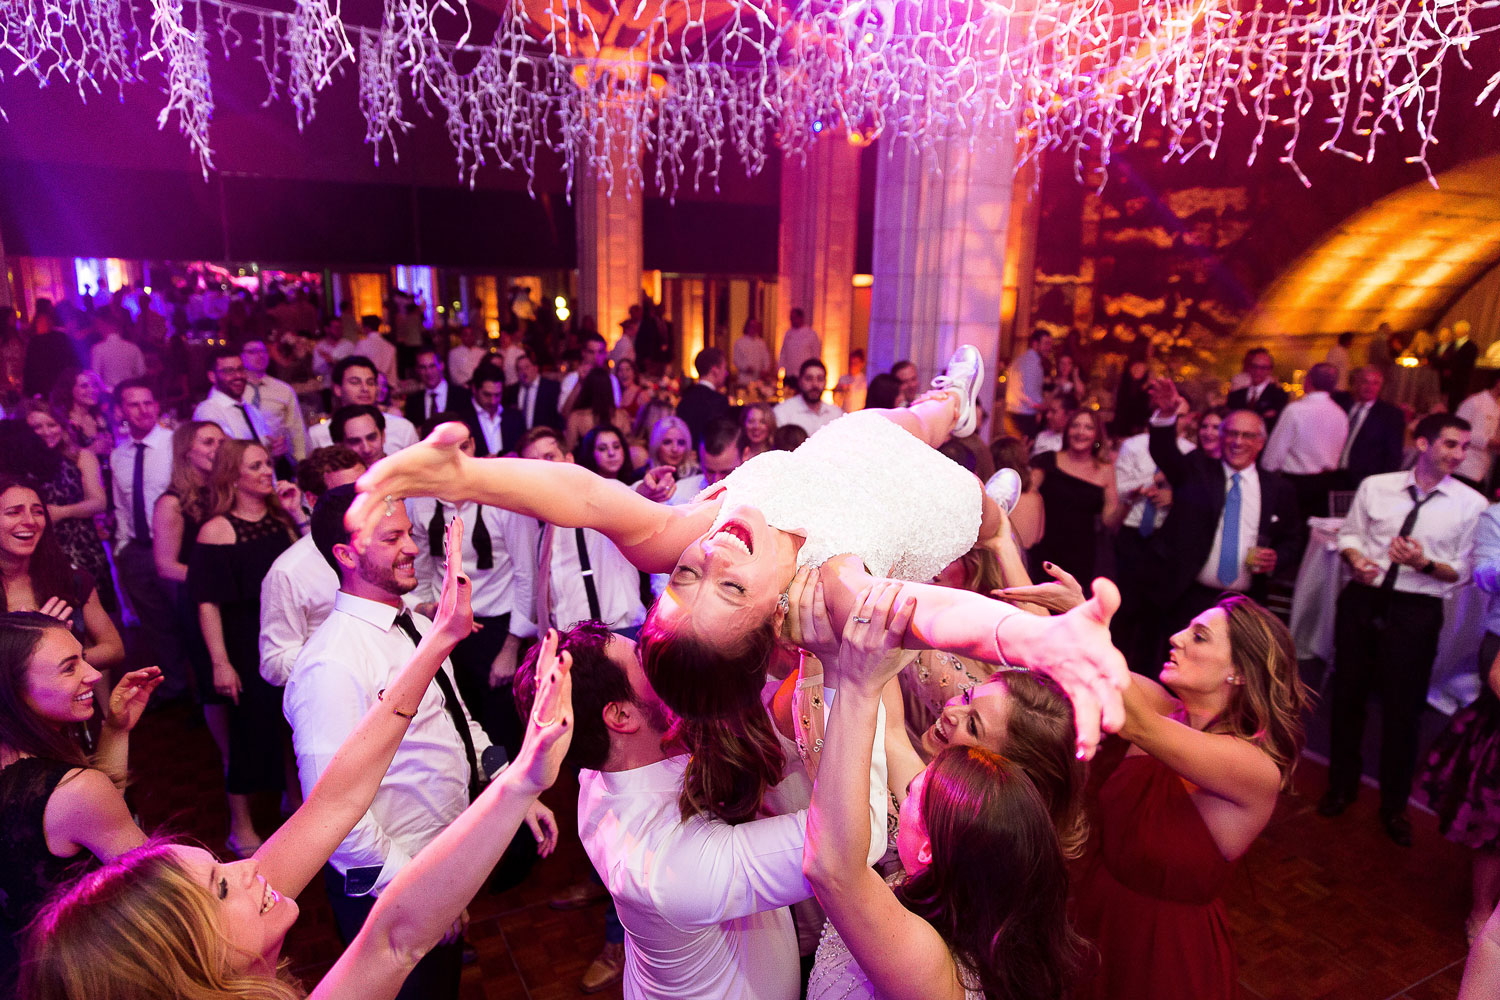 Bride crowd surfing at wedding reception icicle string lights over dance floor